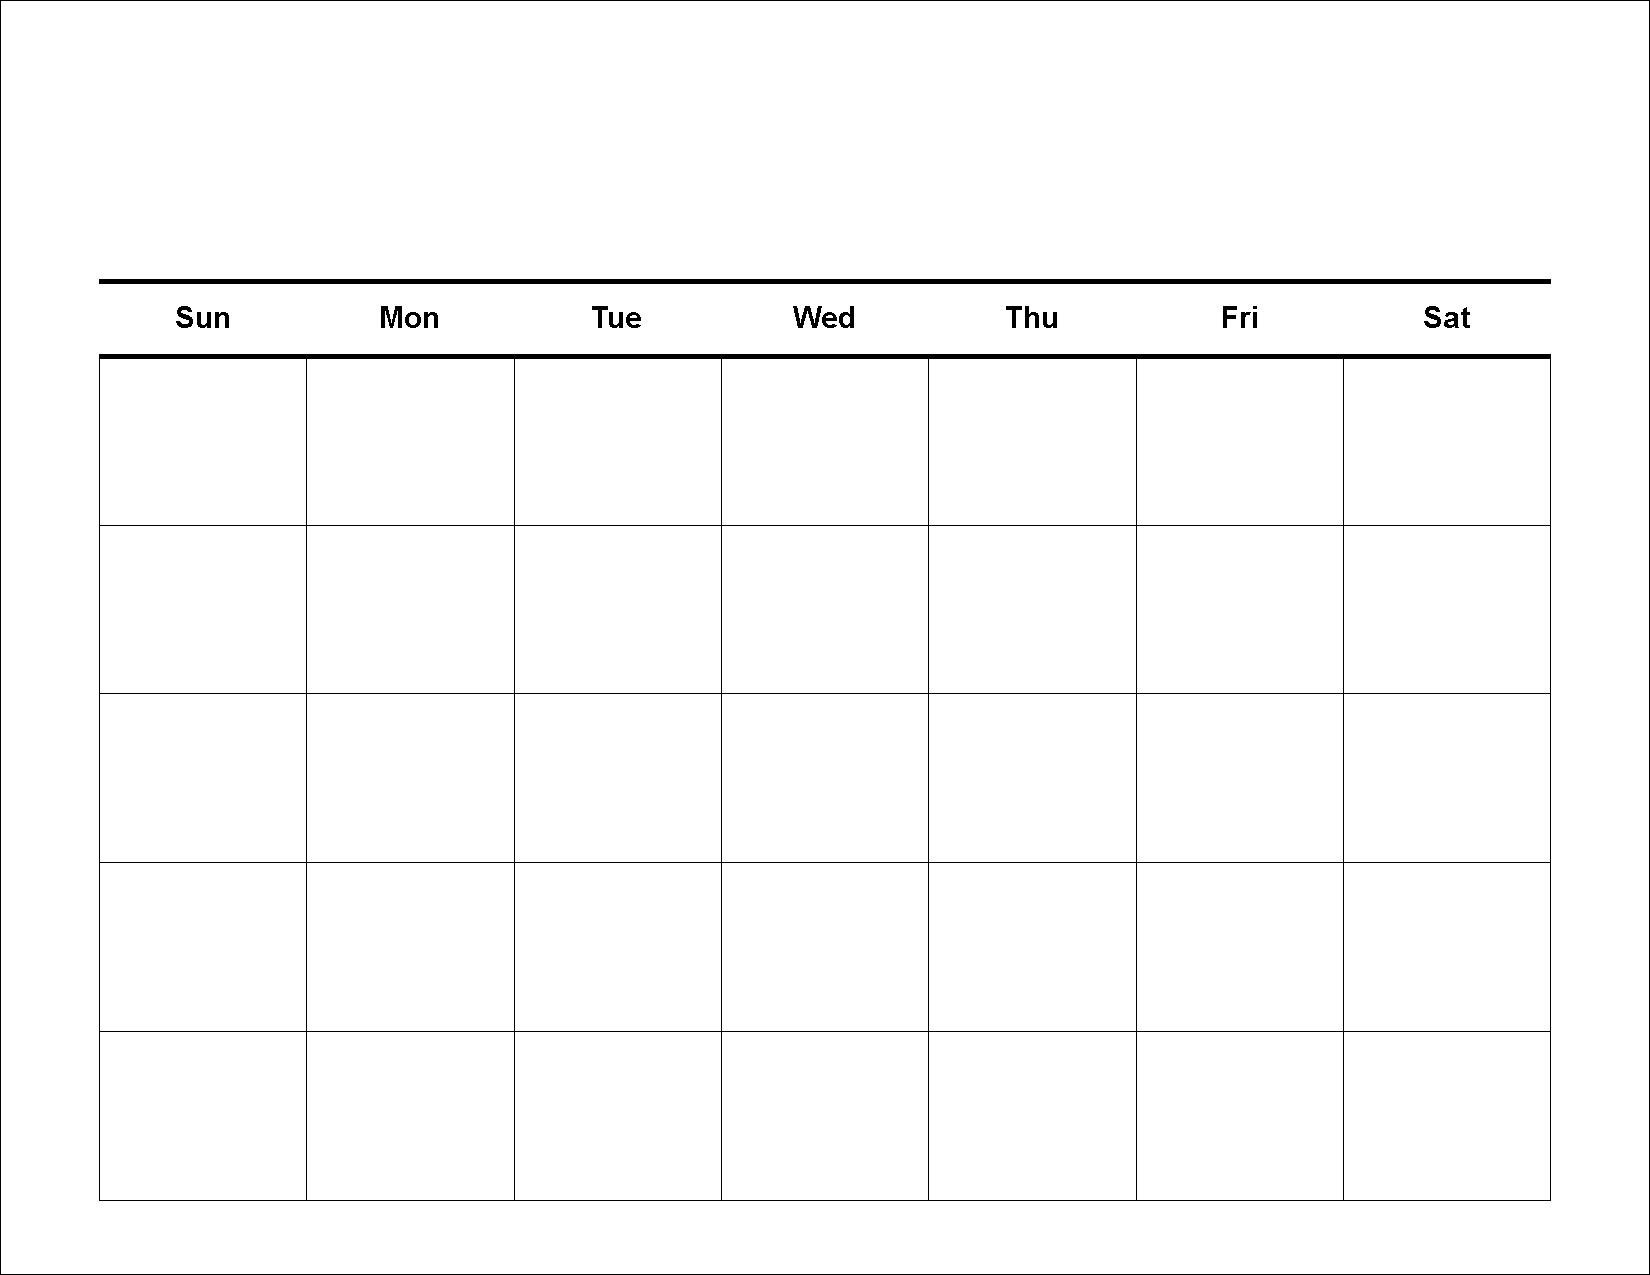 Free Printable Calanders For 2010 Trials Ireland  Free Calendar Templates For The Blind